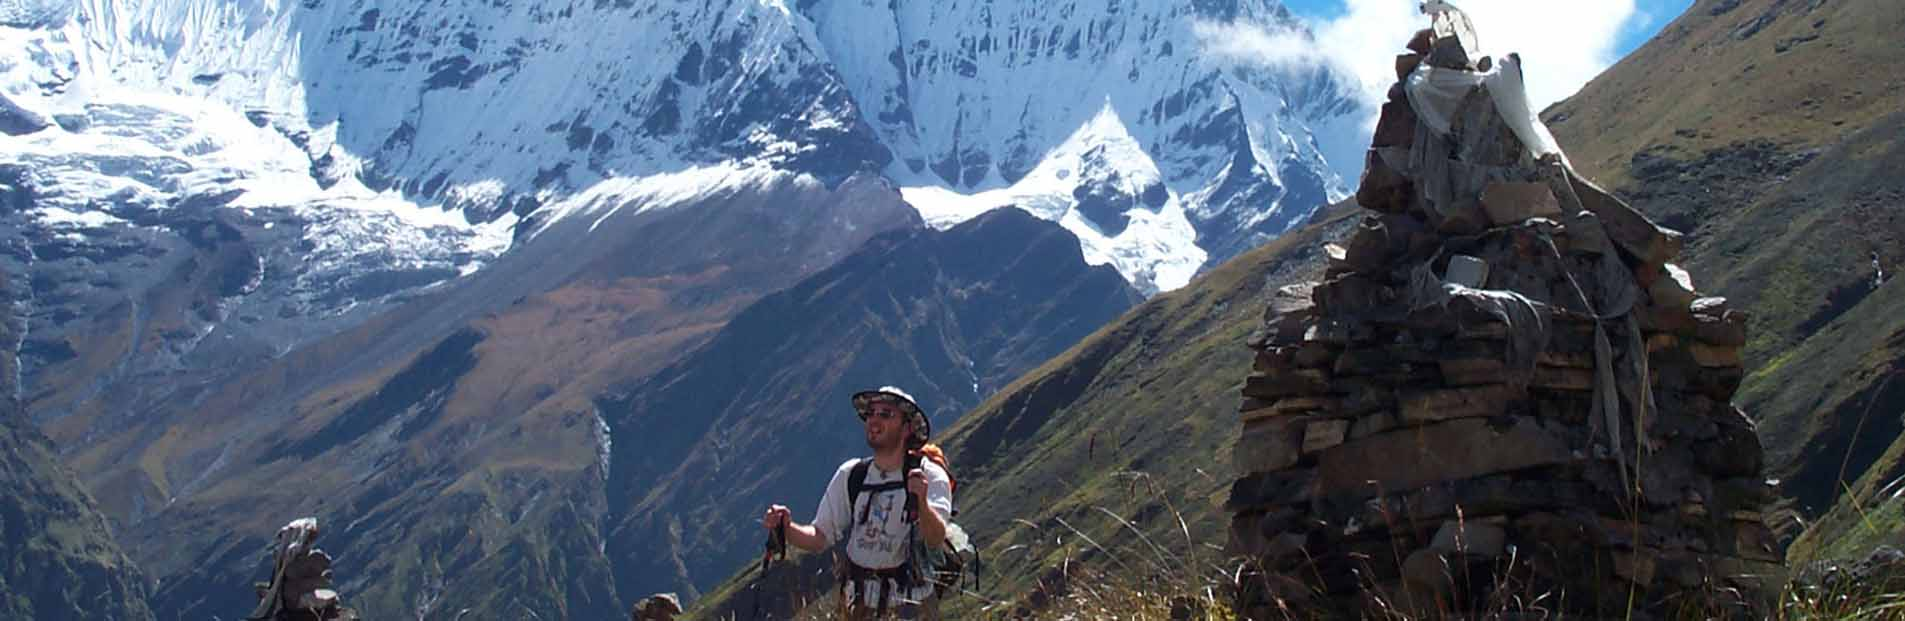 a trekkers in annapurna base camp.jpg